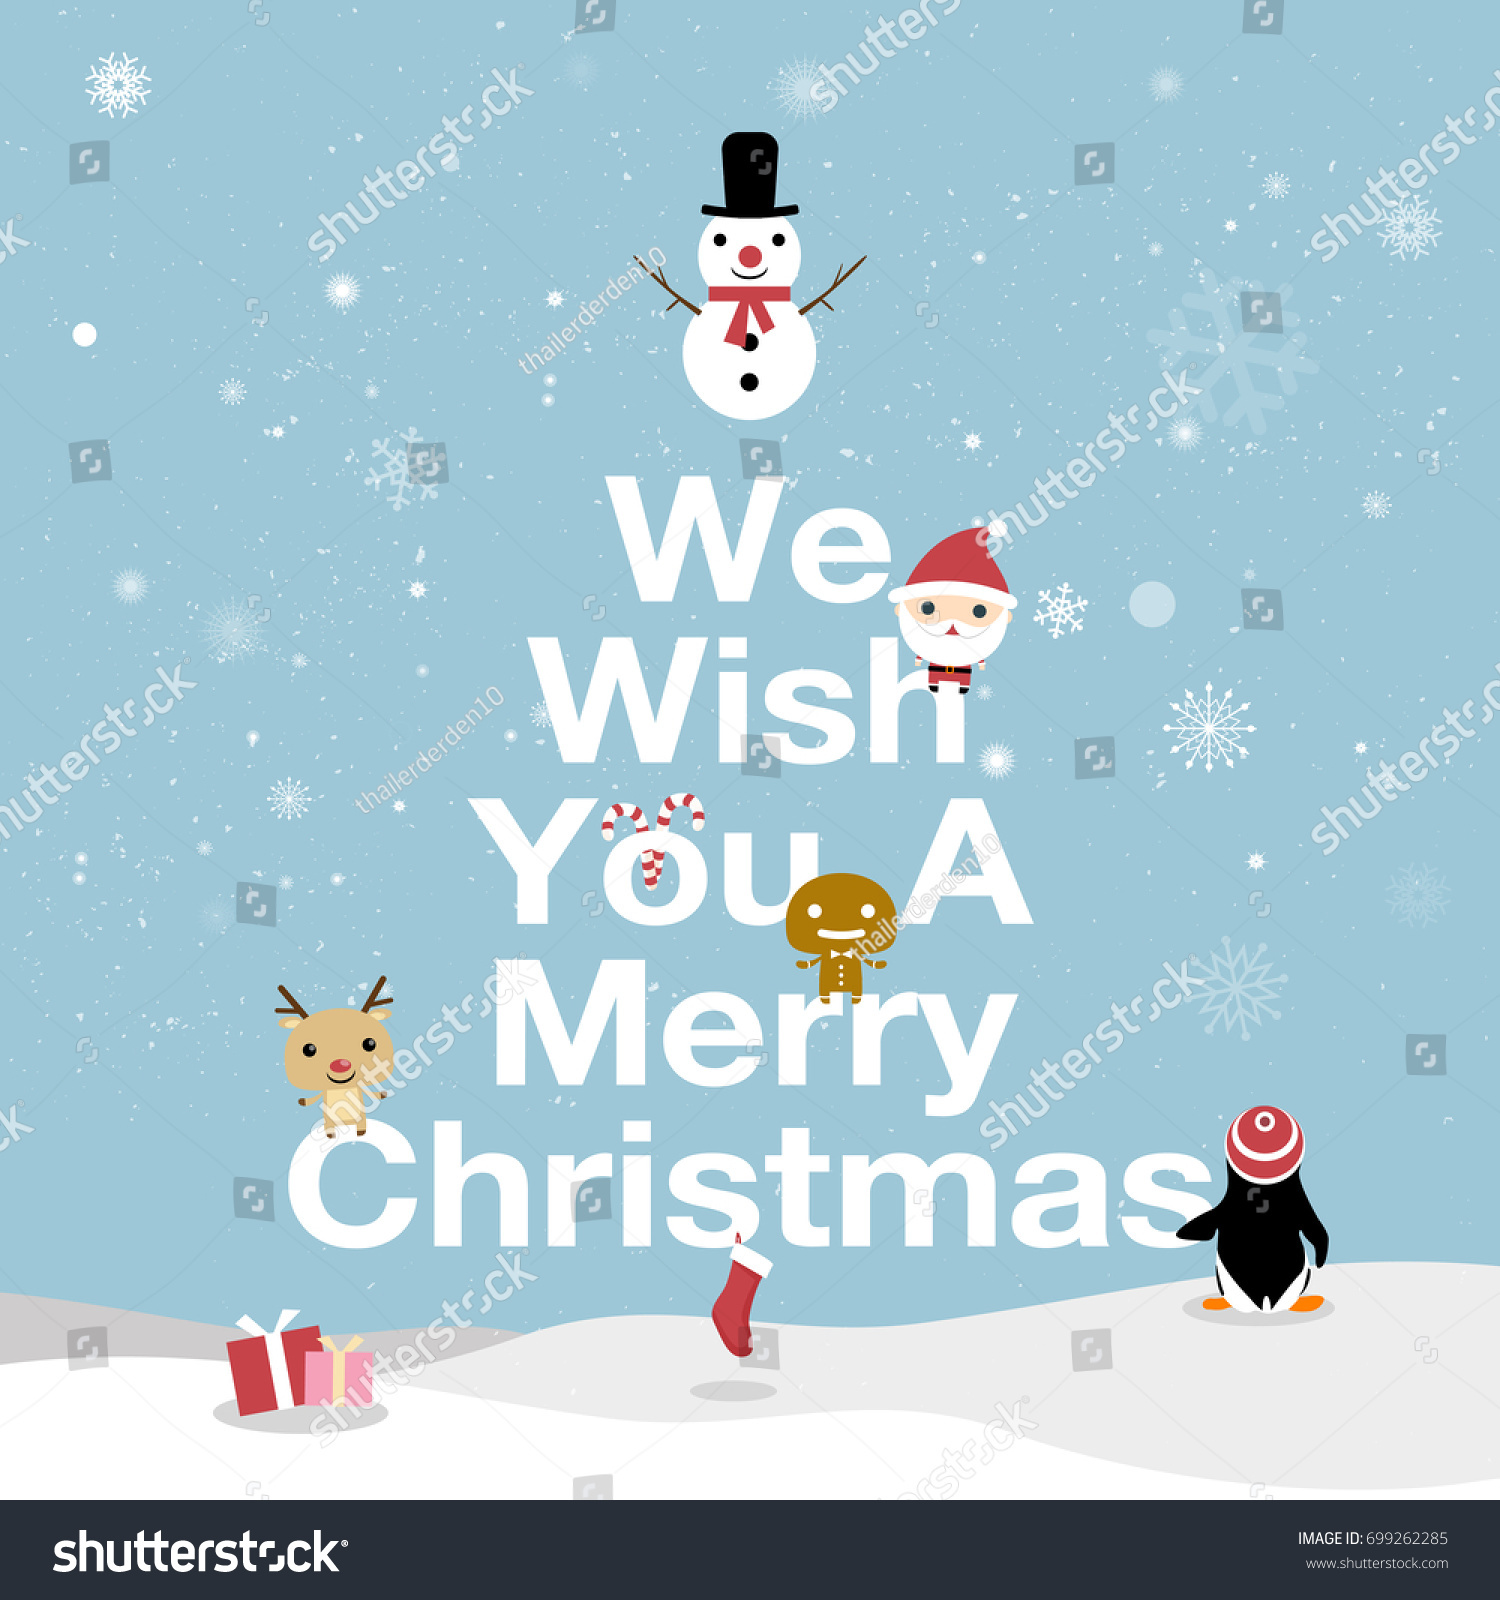 Merry Christmas Card We Wish You Stock Vector Royalty Free